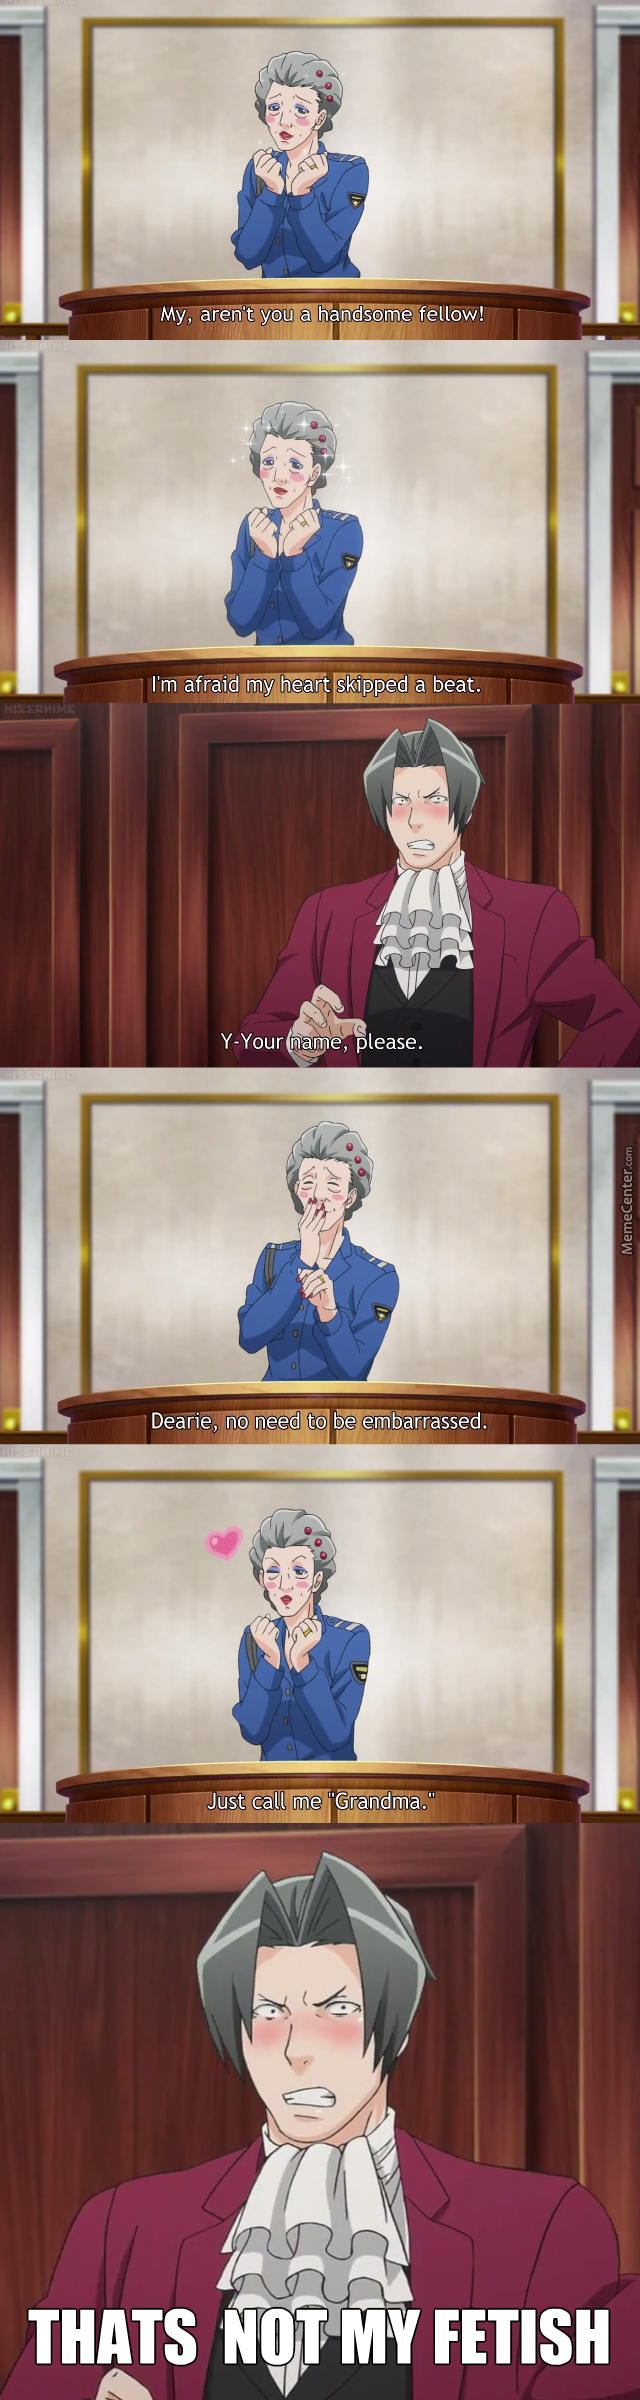 edgeworth and old had xxx productions ace attorney_o_6685169 ace attorney memes best collection of funny ace attorney pictures